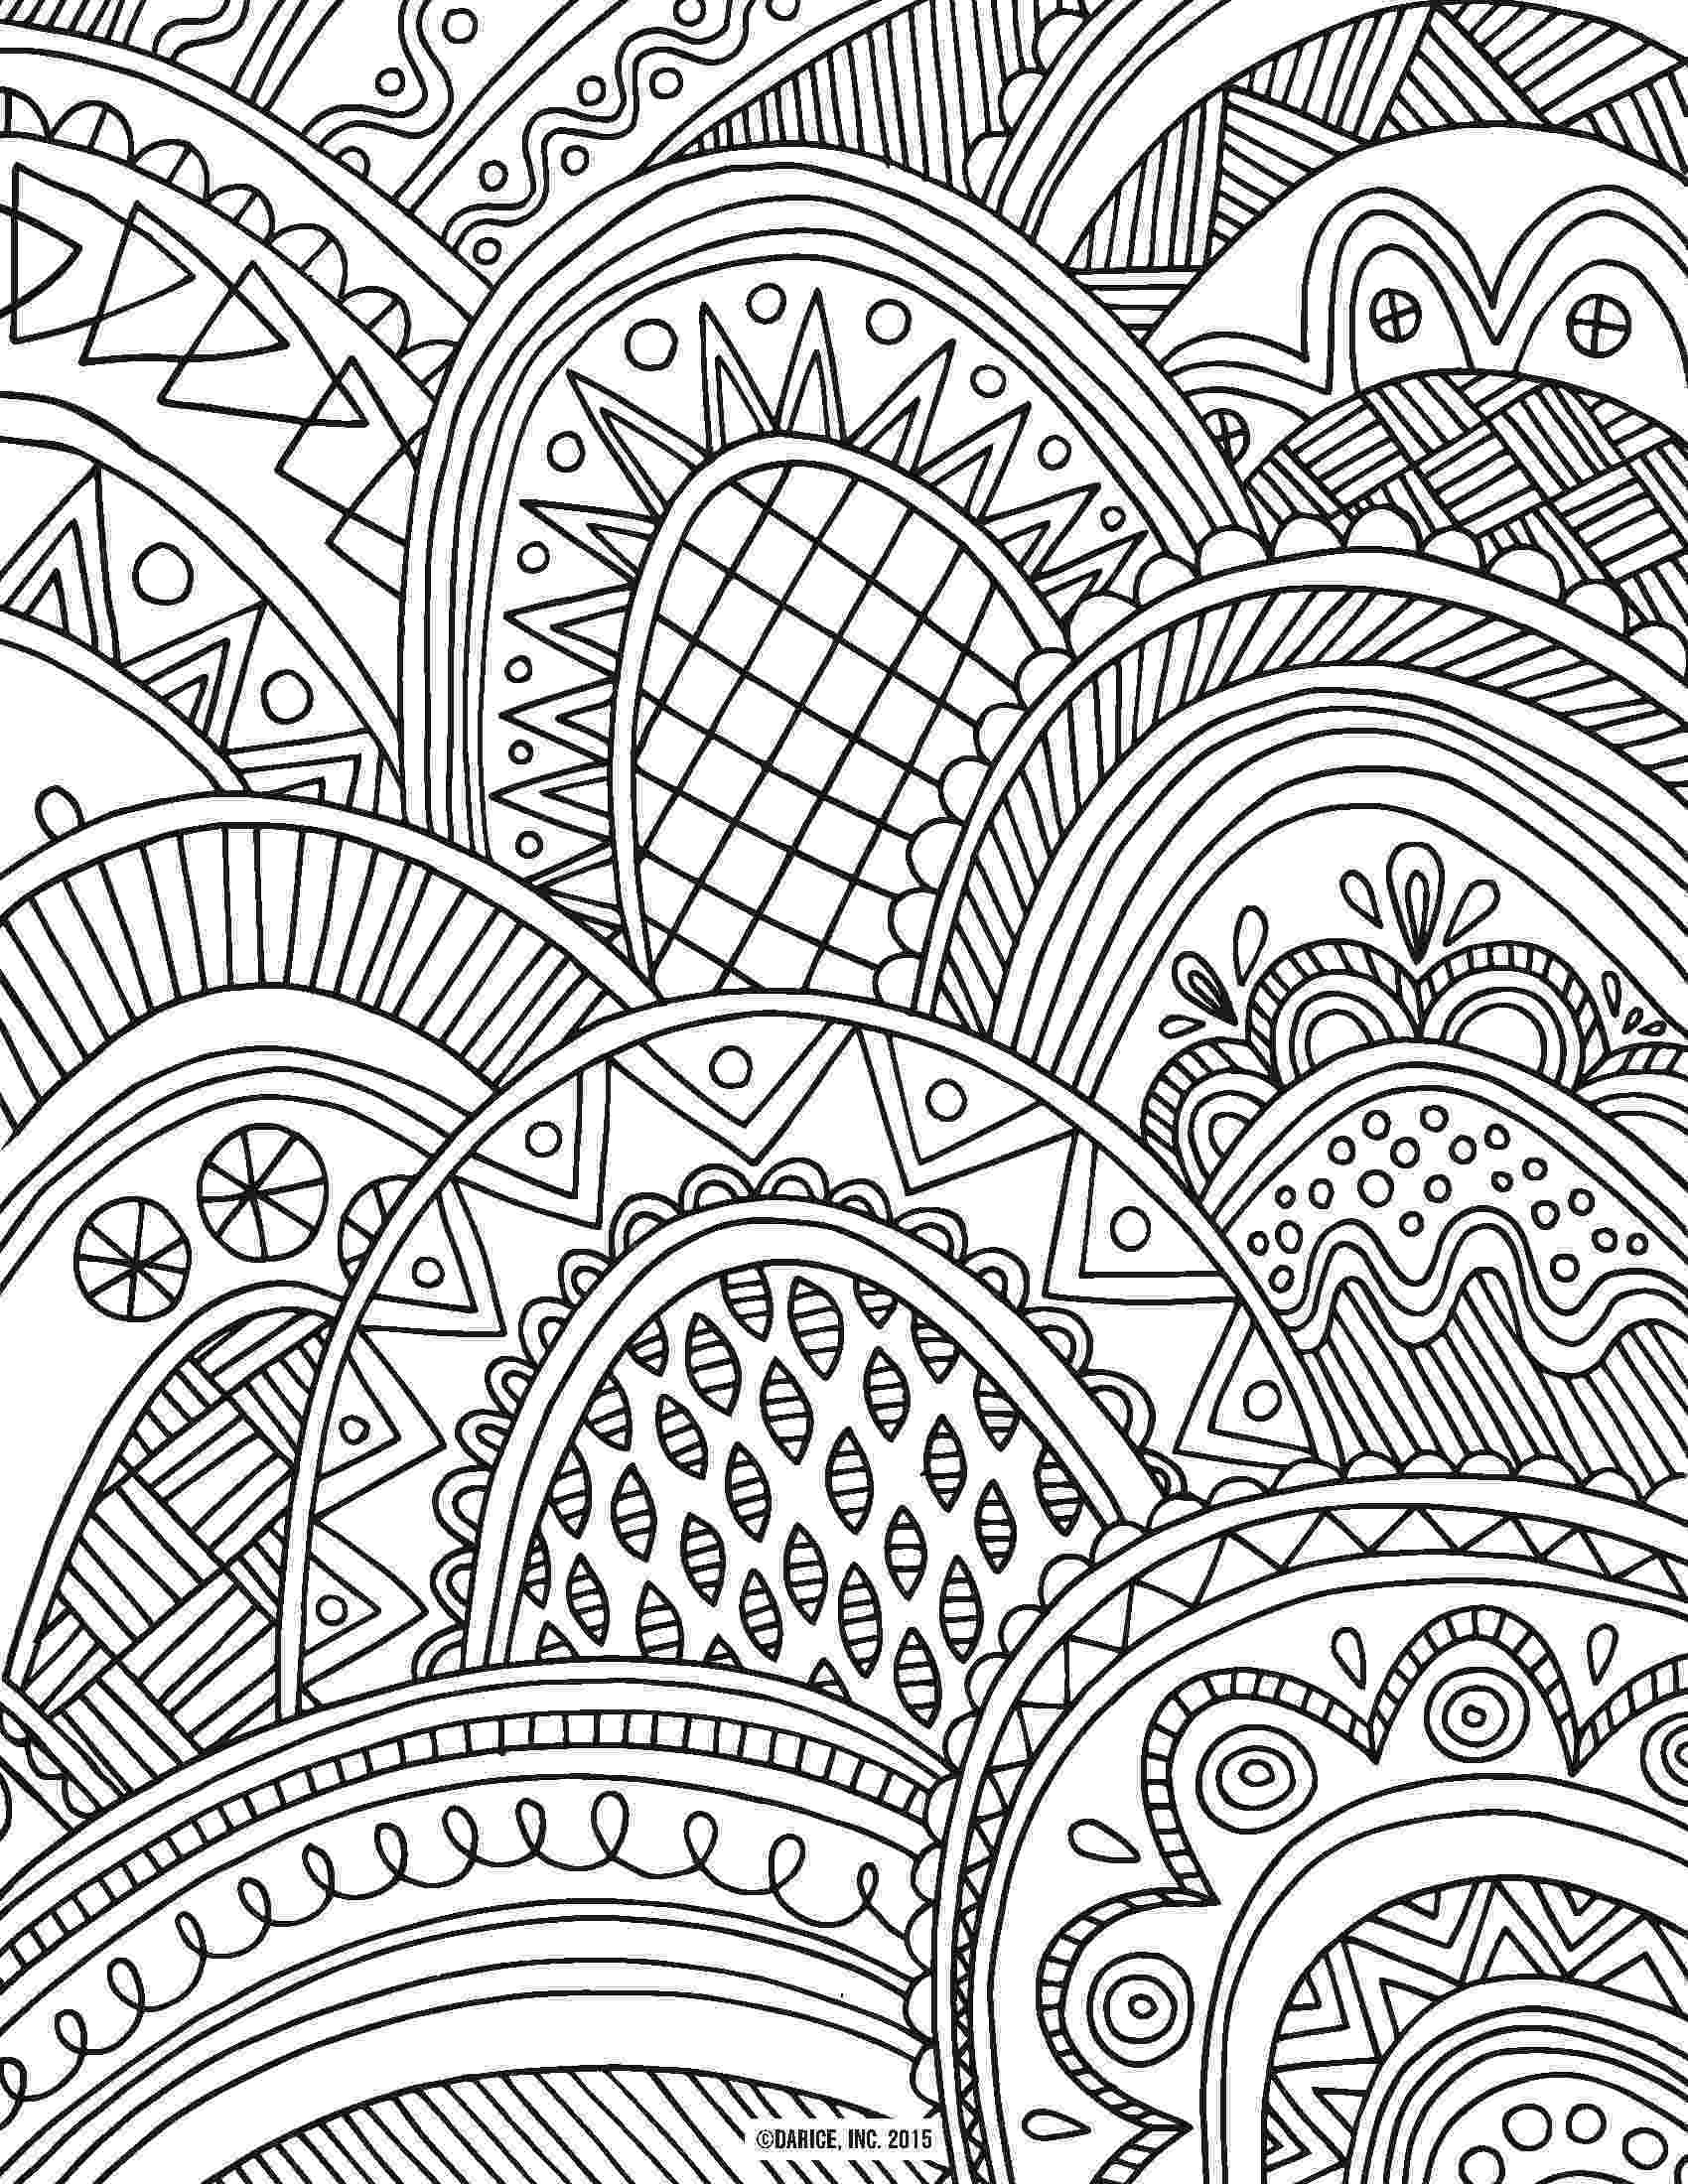 free coloring pages adults online 20 attractive coloring pages for adults we need fun online free pages adults coloring